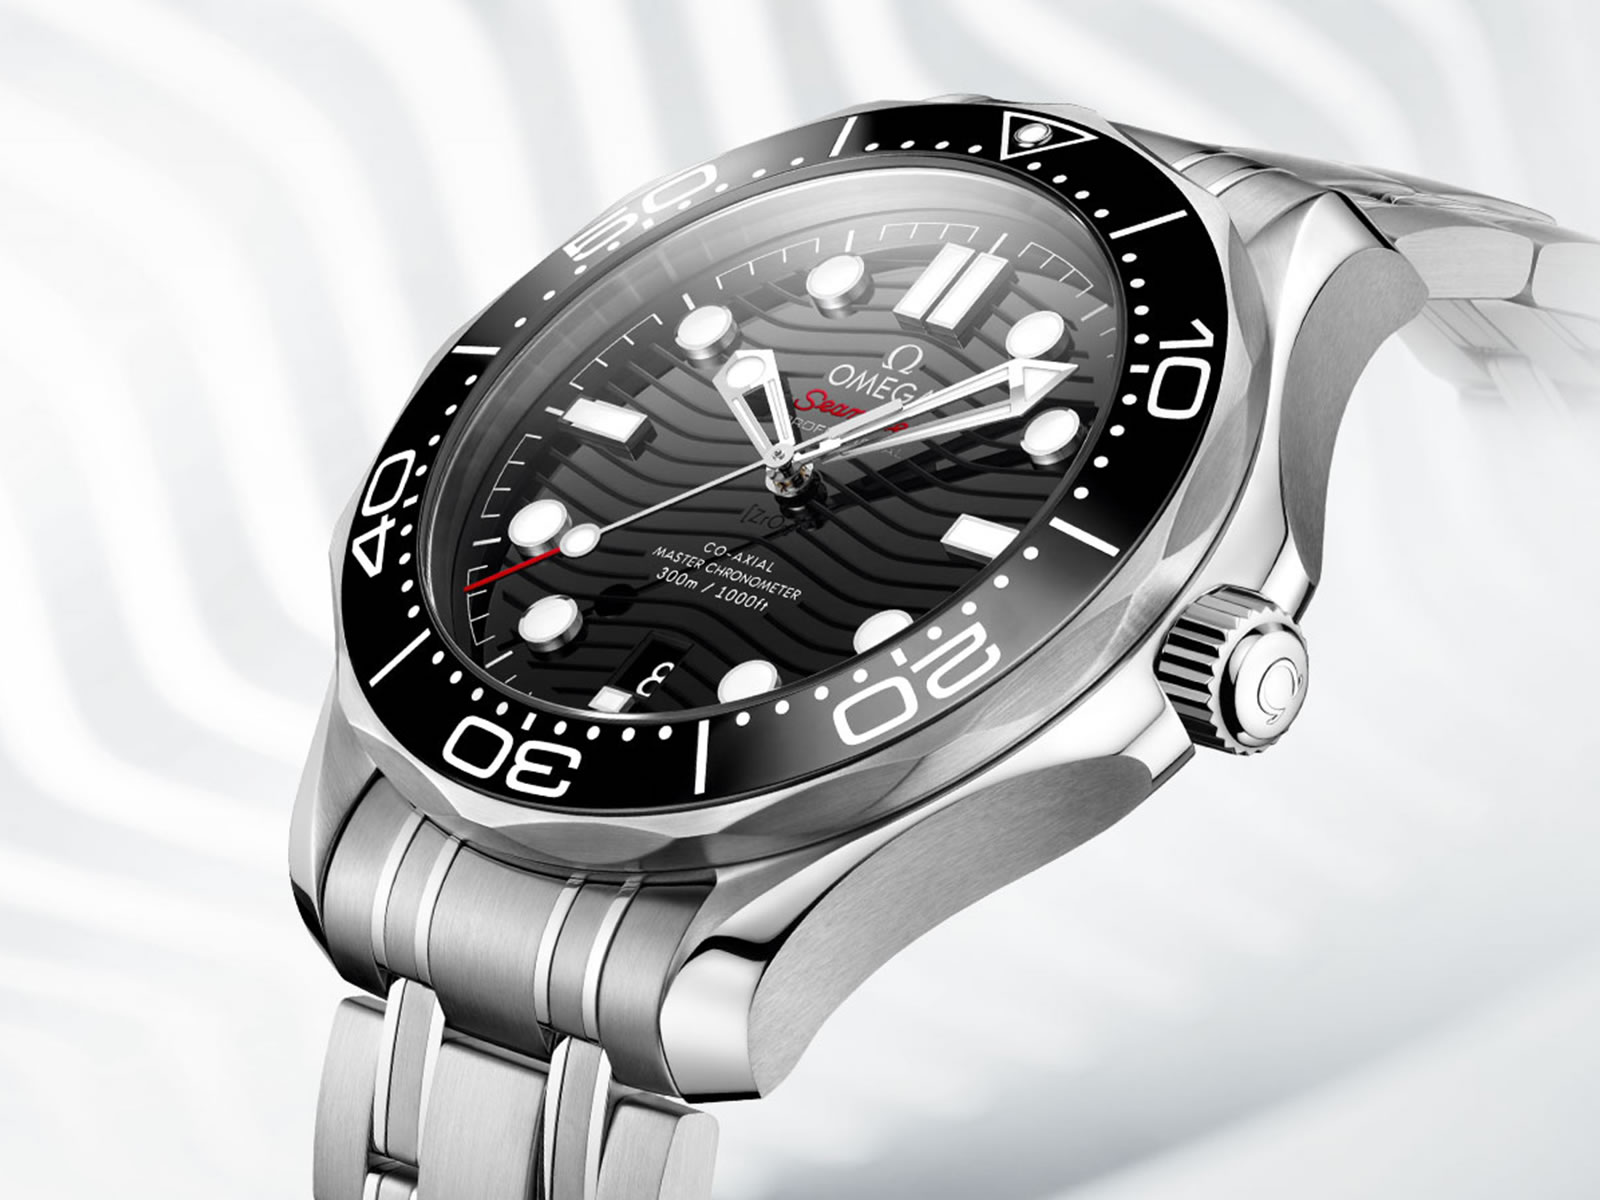 210-30-42-20-01-001-omega-seamaster-diver-300m-collection-3-.jpg